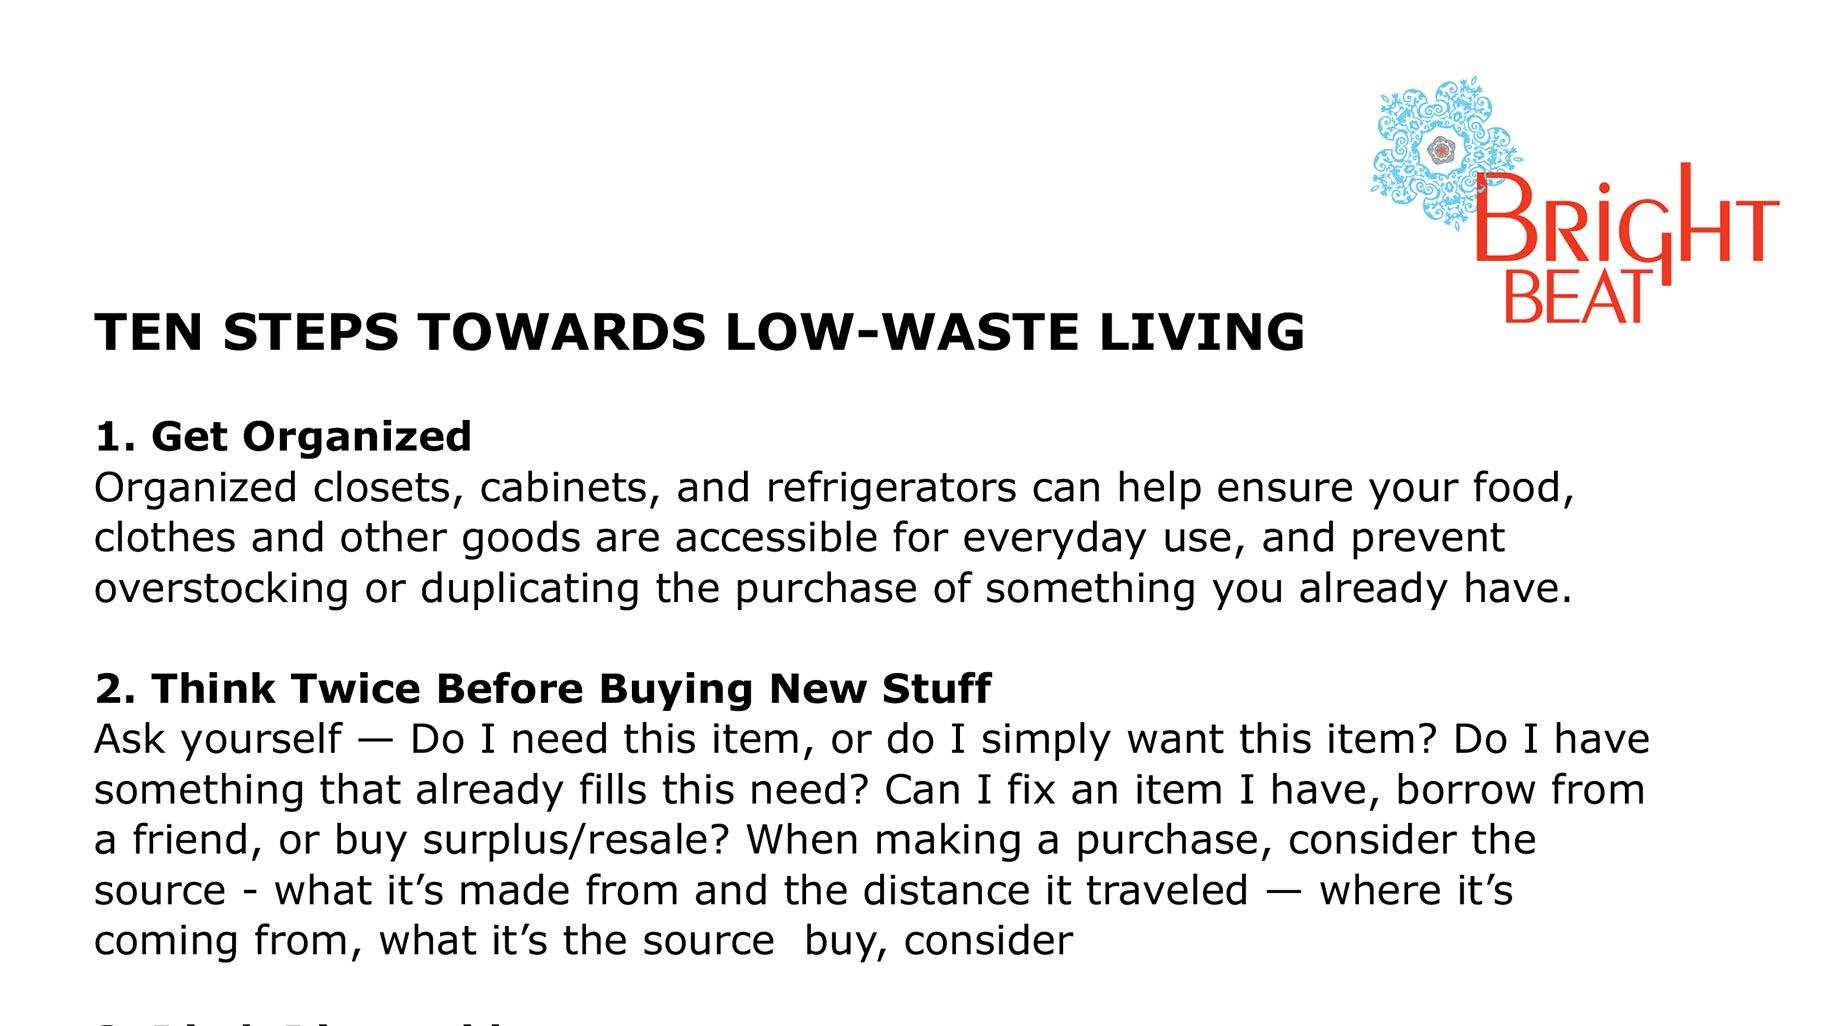 More: Stephanie Katsaros shares some of her best tips for low-waste living.